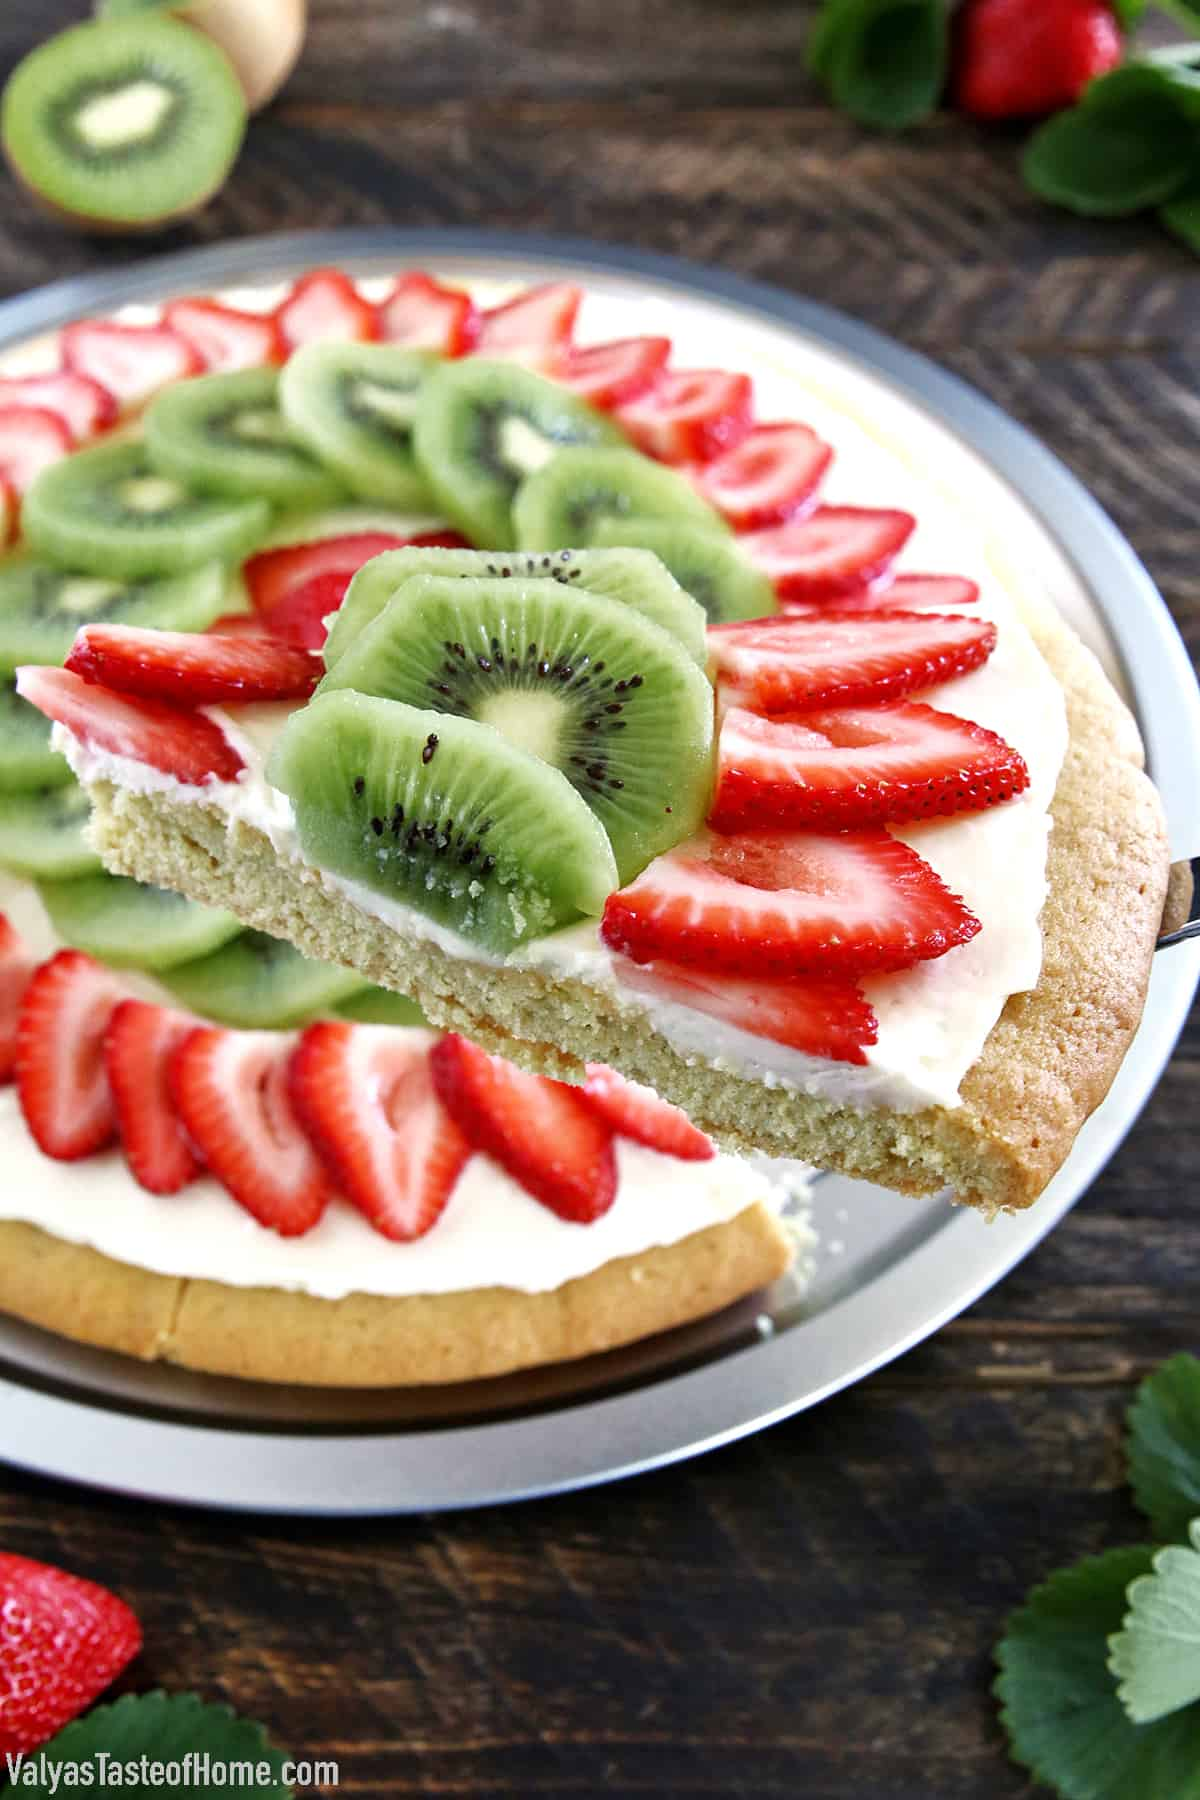 Another kid-friendly project is up again! Of course, there are lots of different fruit you can put on dessert pizza, but strawberry and kiwi is our family's absolute favorite combination, and this Strawberry Kiwi Dessert Pizza is my kid's favorite dessert pizza.